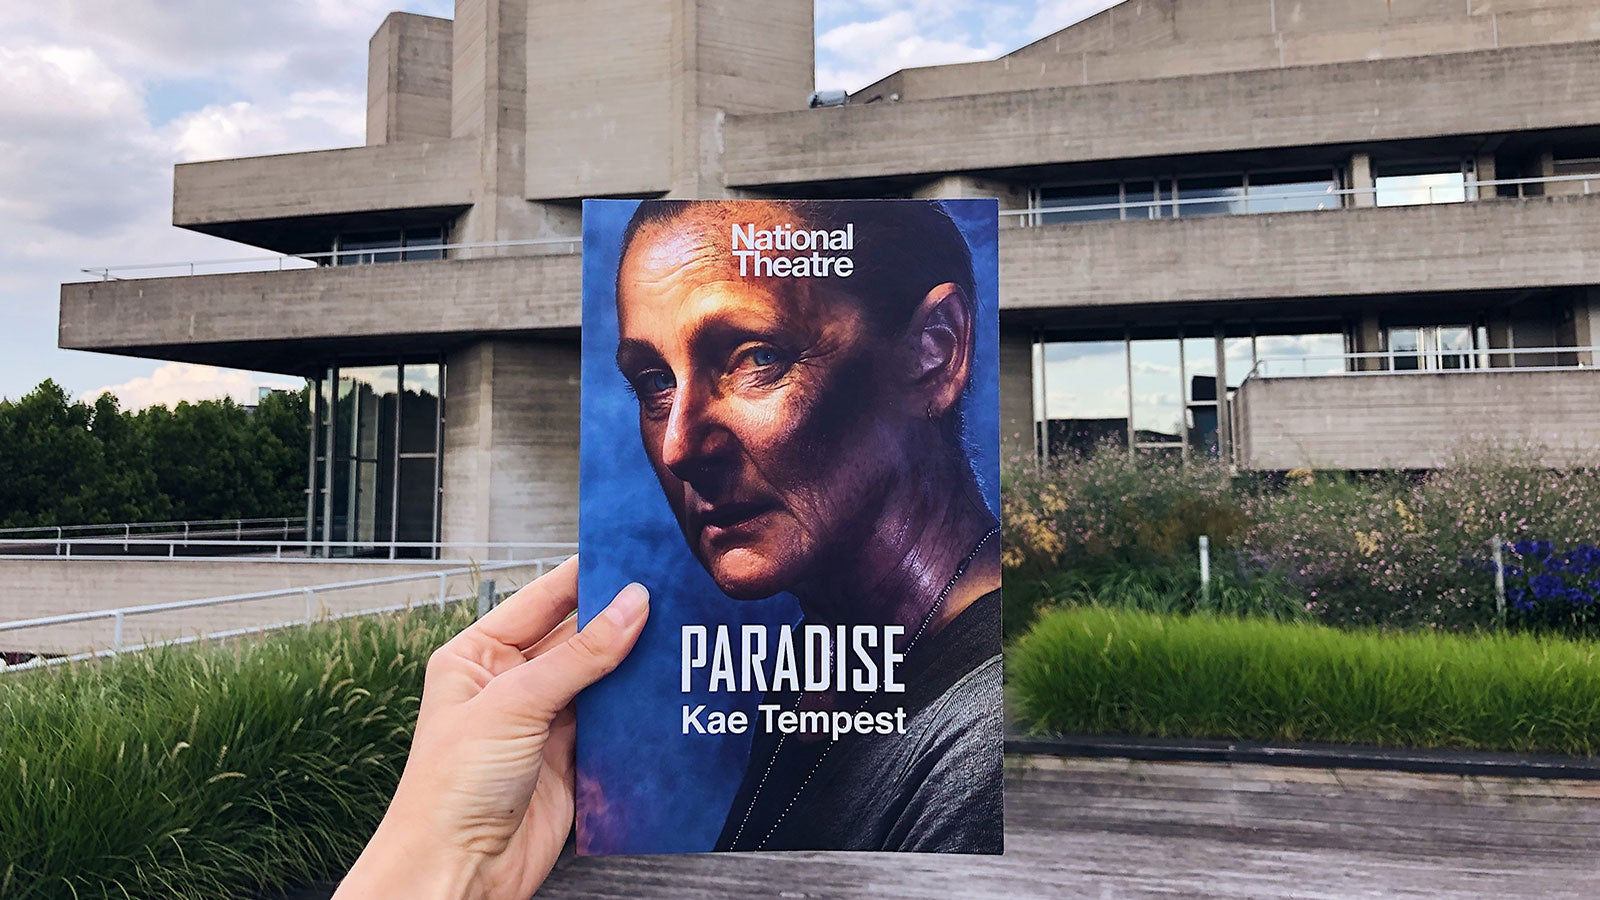 Someone holds a copy of Kae Tempest's Paradise up against the backdrop of London's iconic National Theatre building.